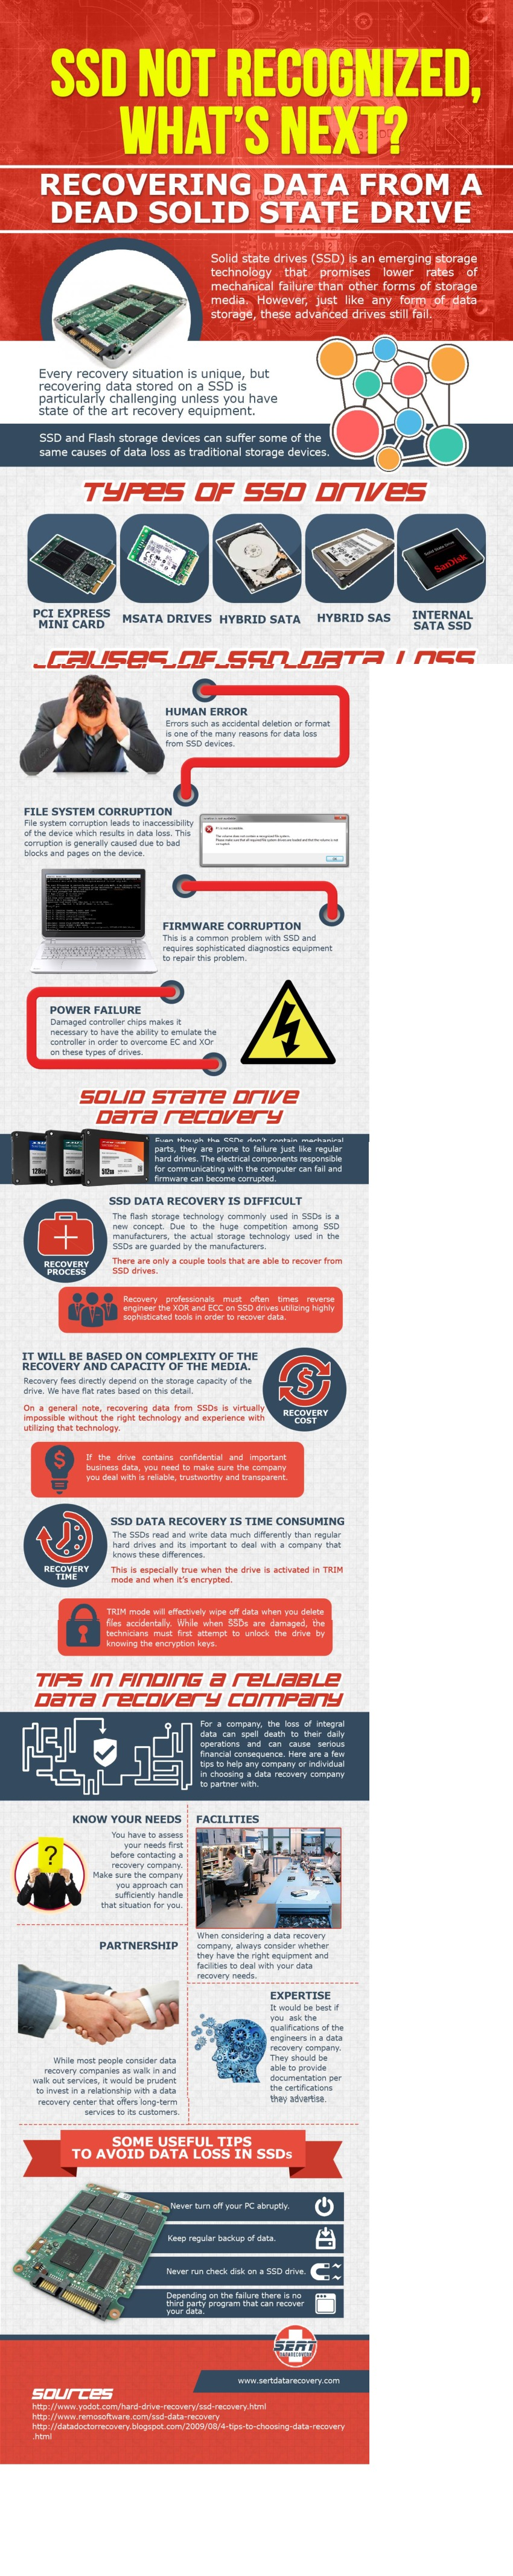 How Much Does It Cost To Recover Data From A Solid State